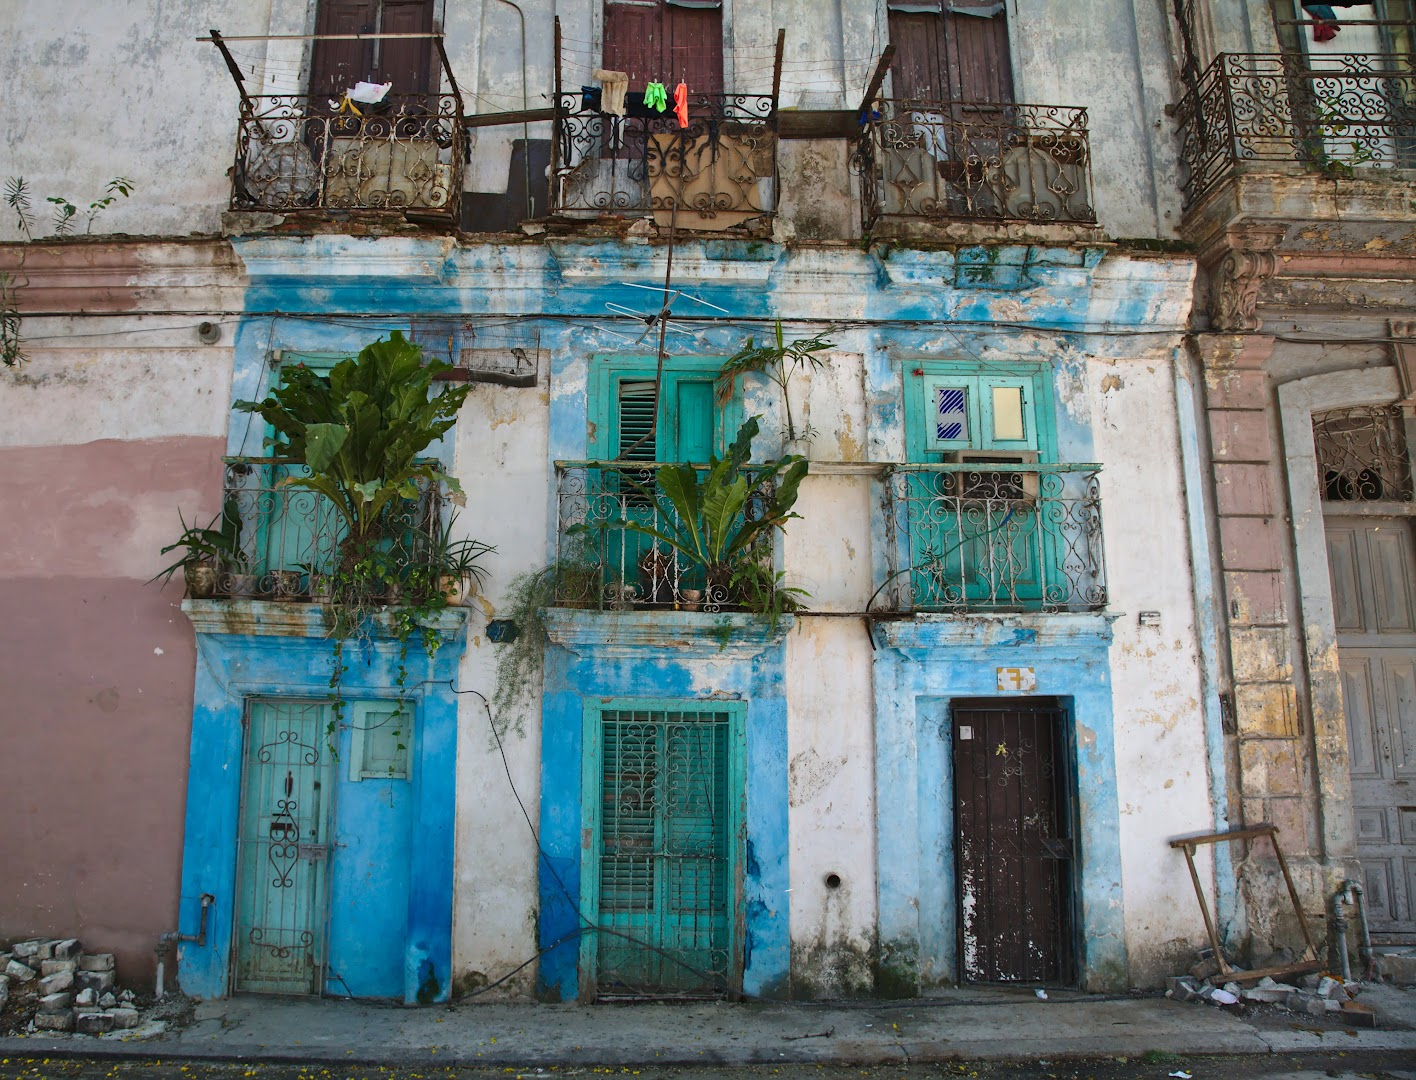 Havana has beatiful architecture, but it is deteriorating